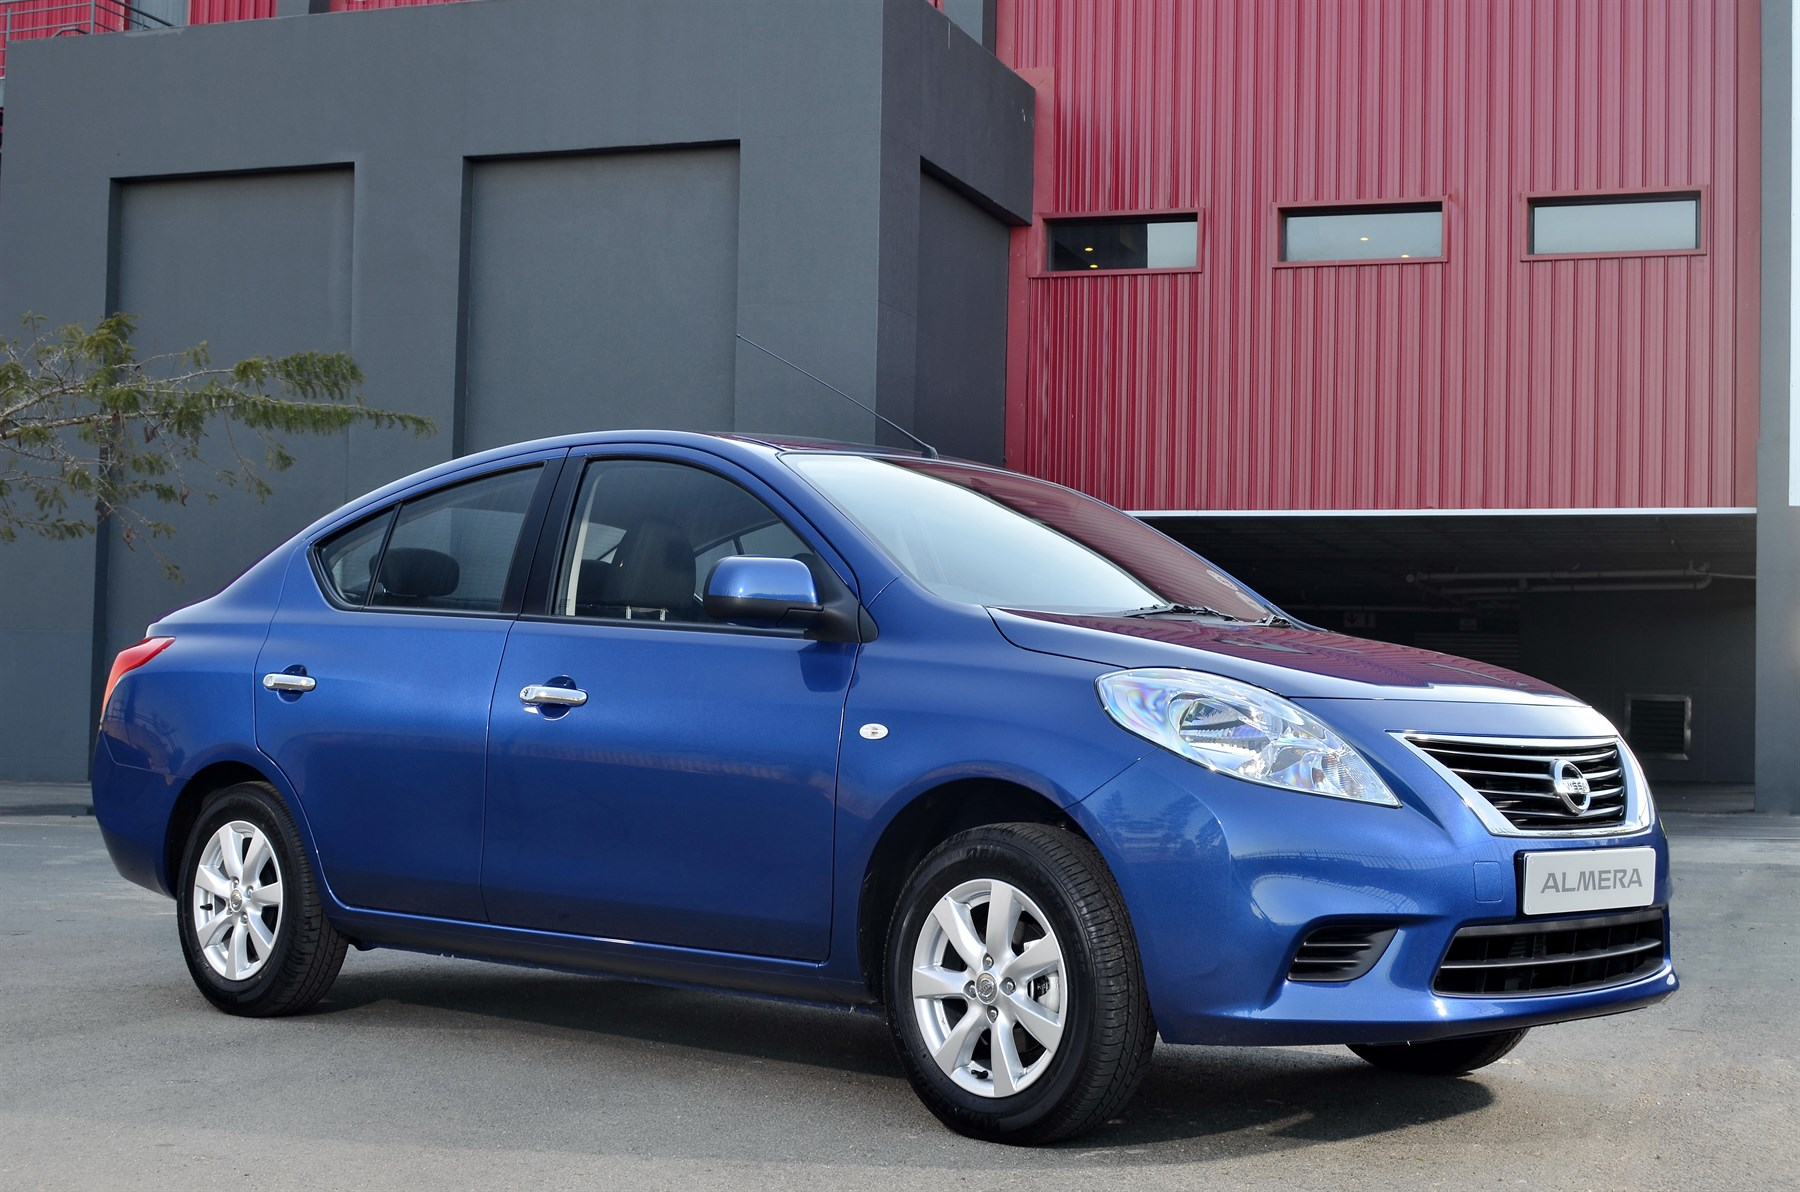 Nissan Almera 1.5 Acenta (2014): New Car Review ...